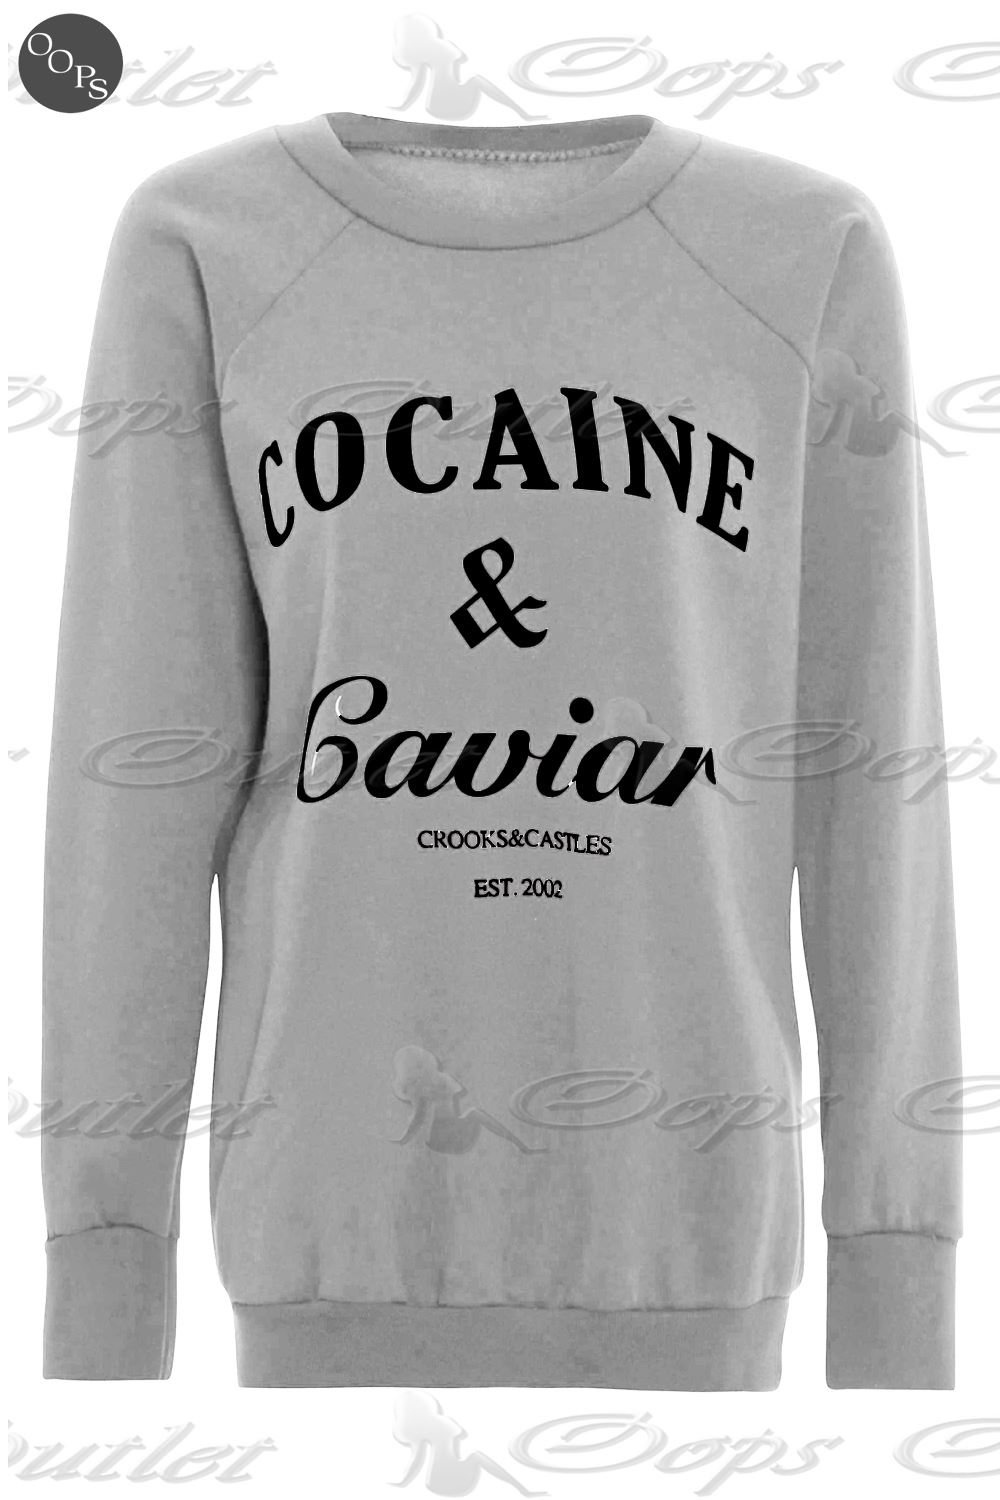 Womens-Cocaine-And-Caviar-Print-Jumper-Ladies-Pullover-Sweatshirt-T-Shirt-Top